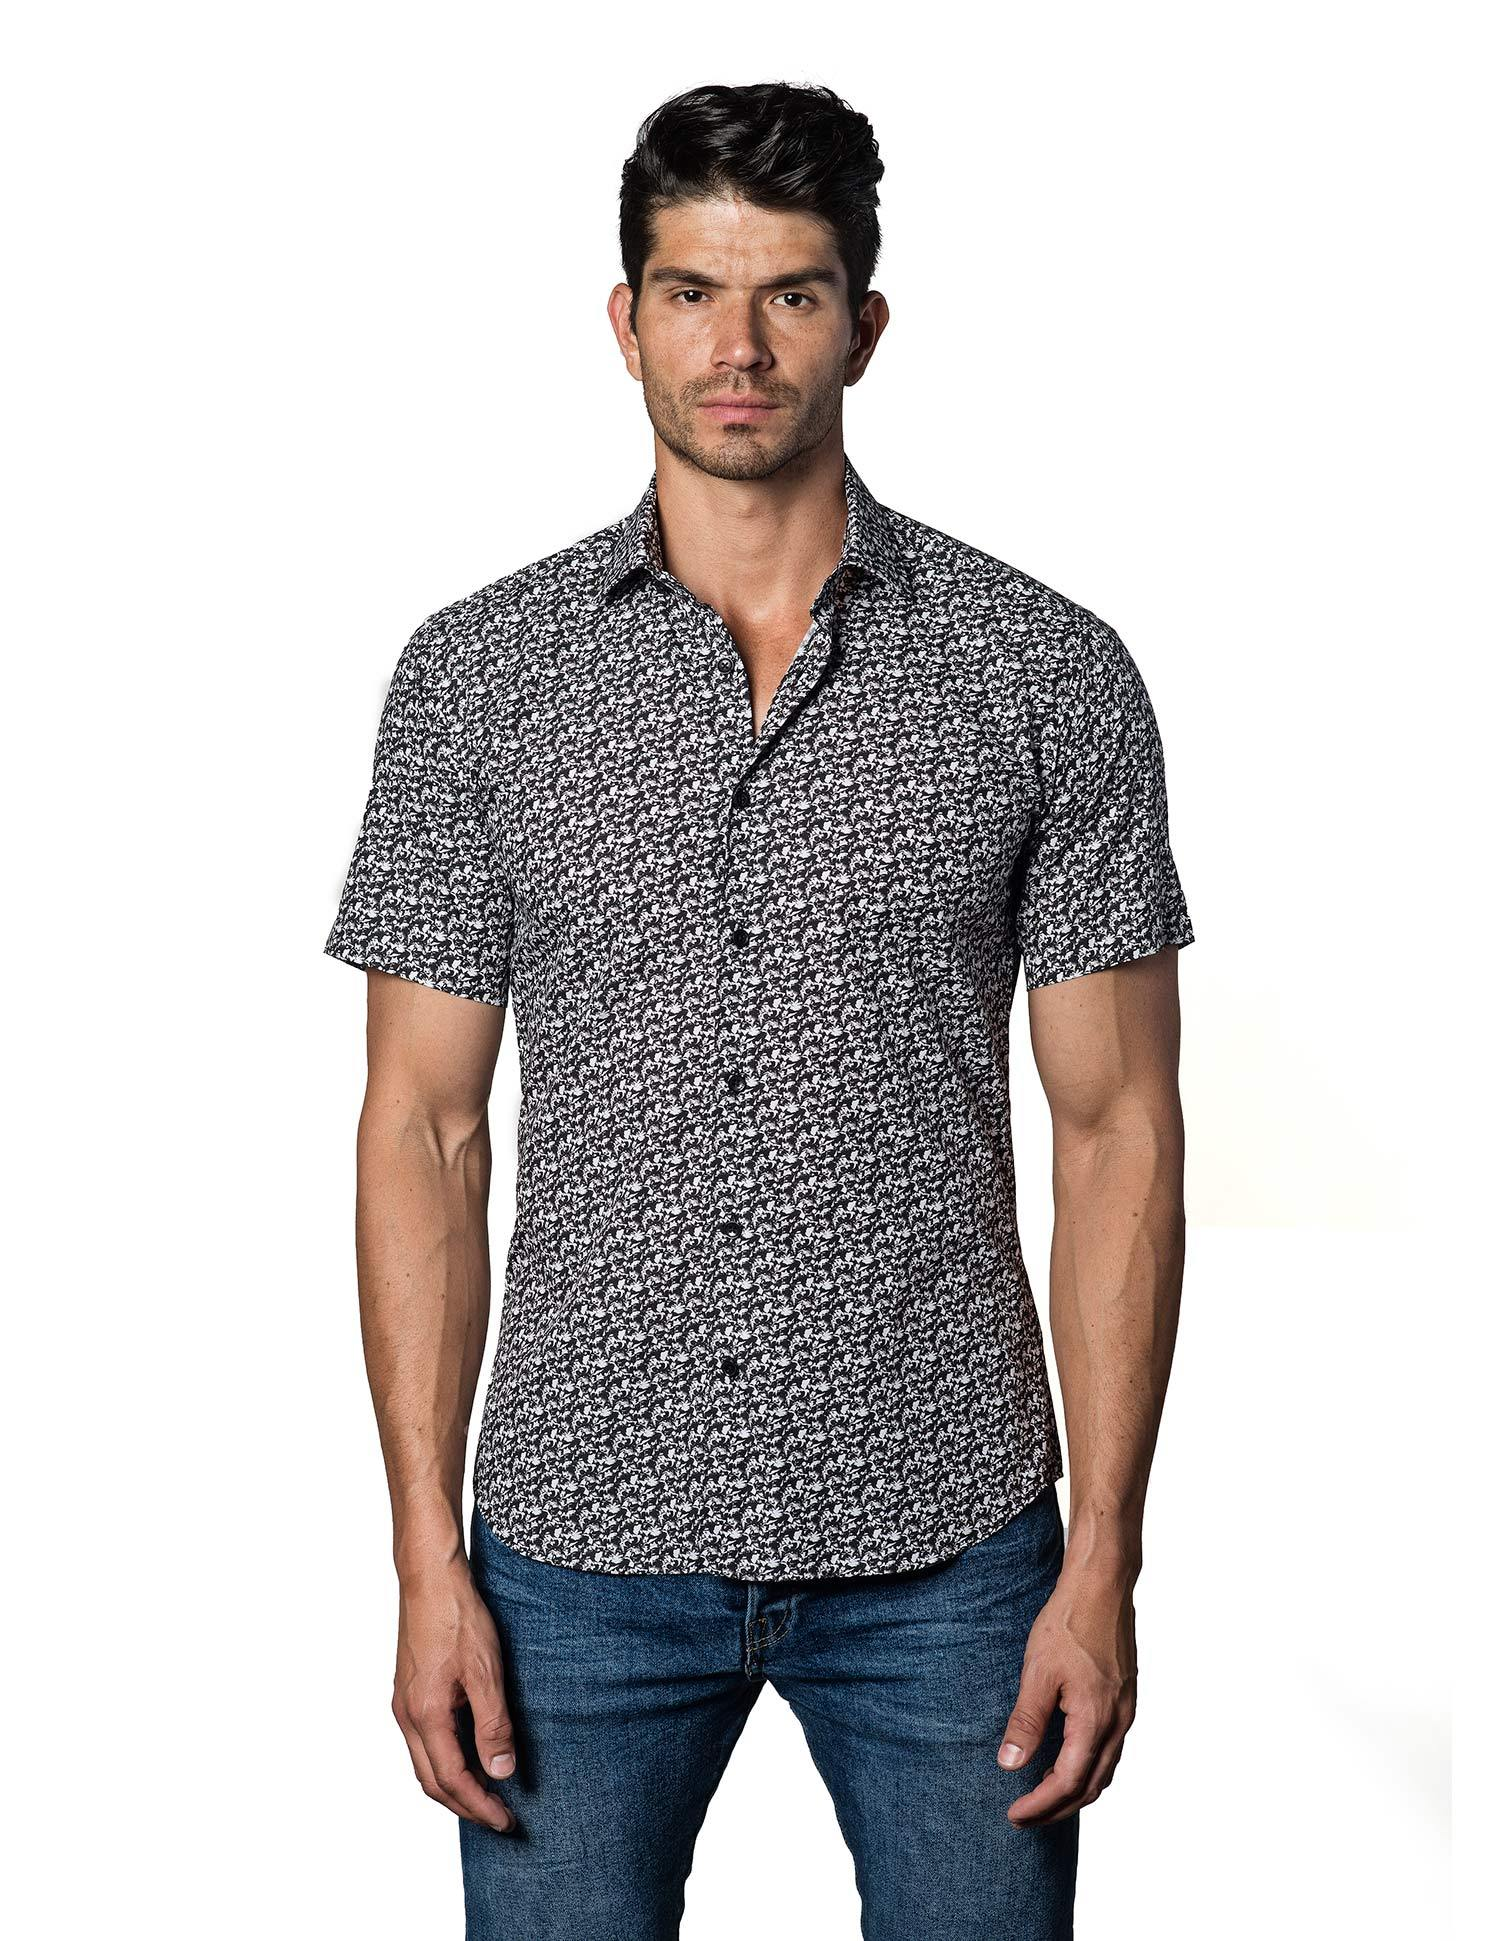 White and Black Floral Shirt for Men - front T-3092-SS - Jared Lang